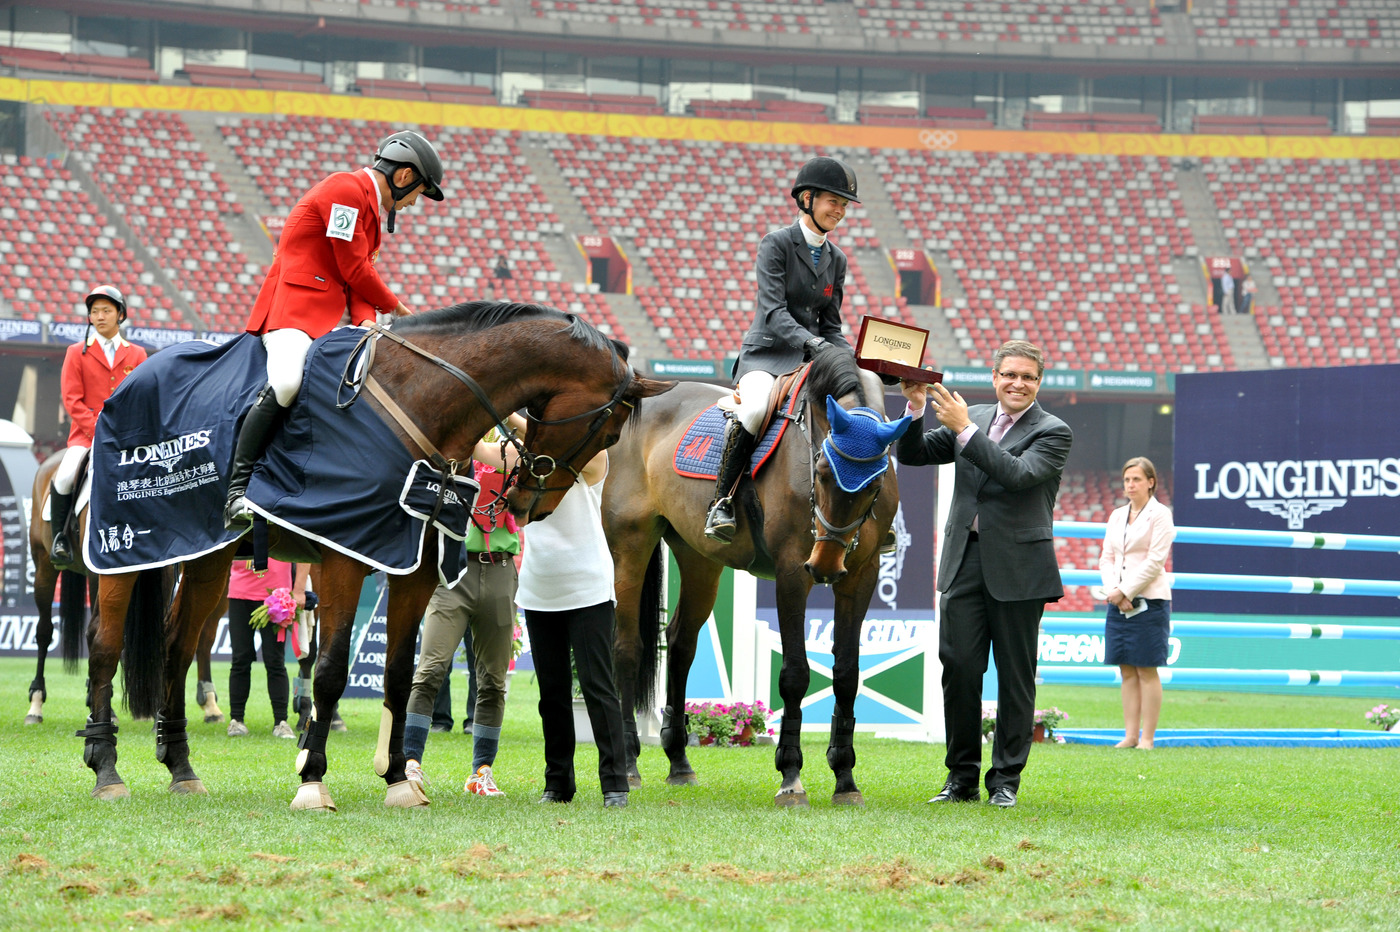 Longines Show Jumping Event: Enjoying the beauty of equestrian sport at the Longines Equestrian Beijing Masters 4